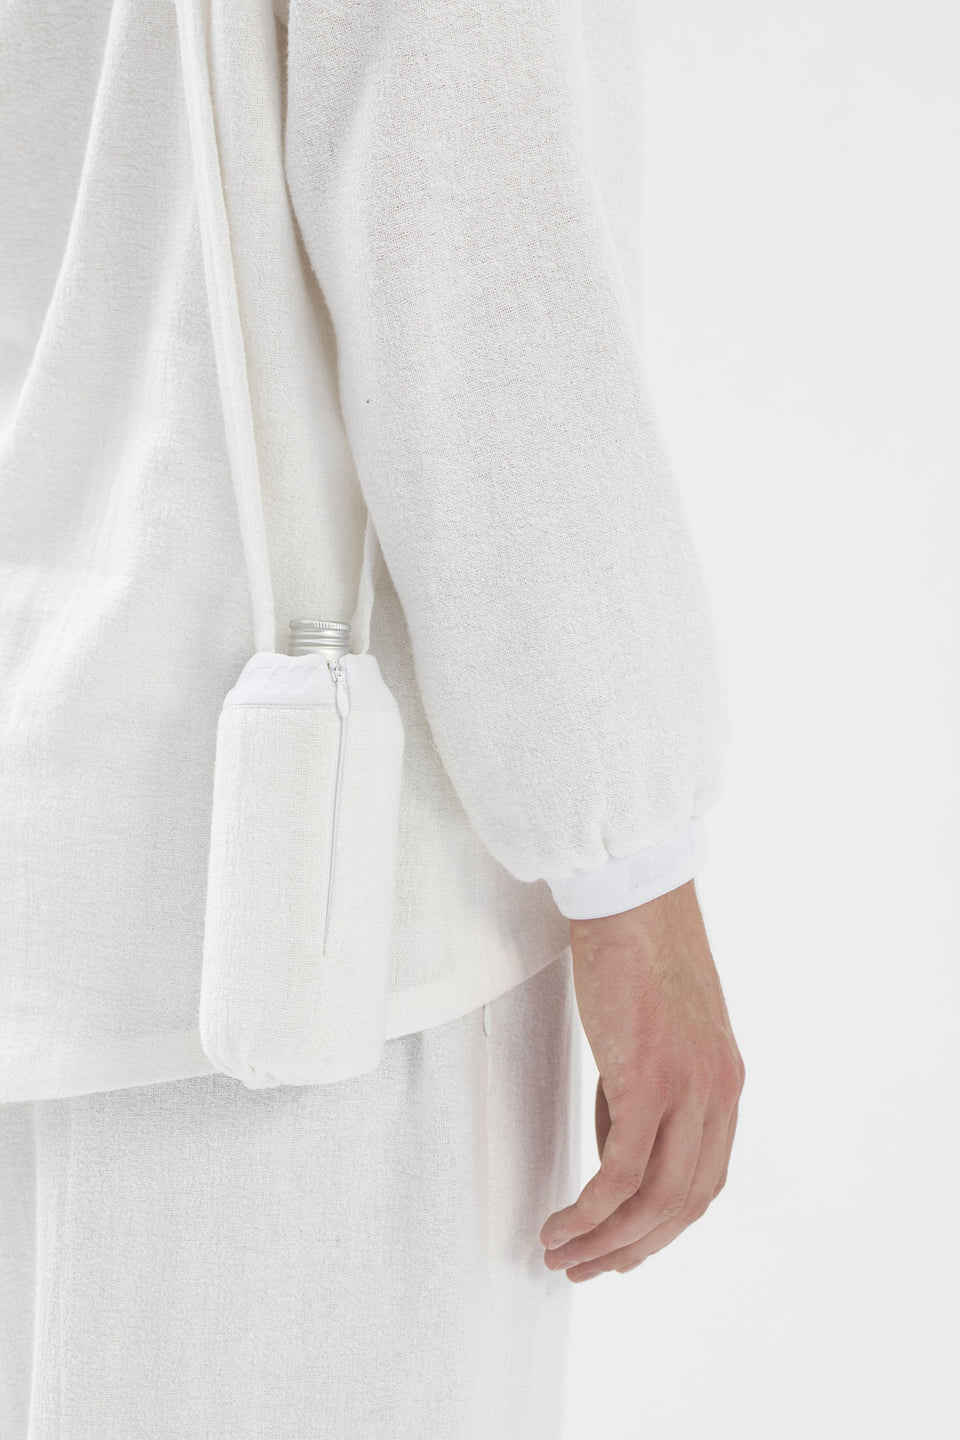 RAW U-Bottle Bag White